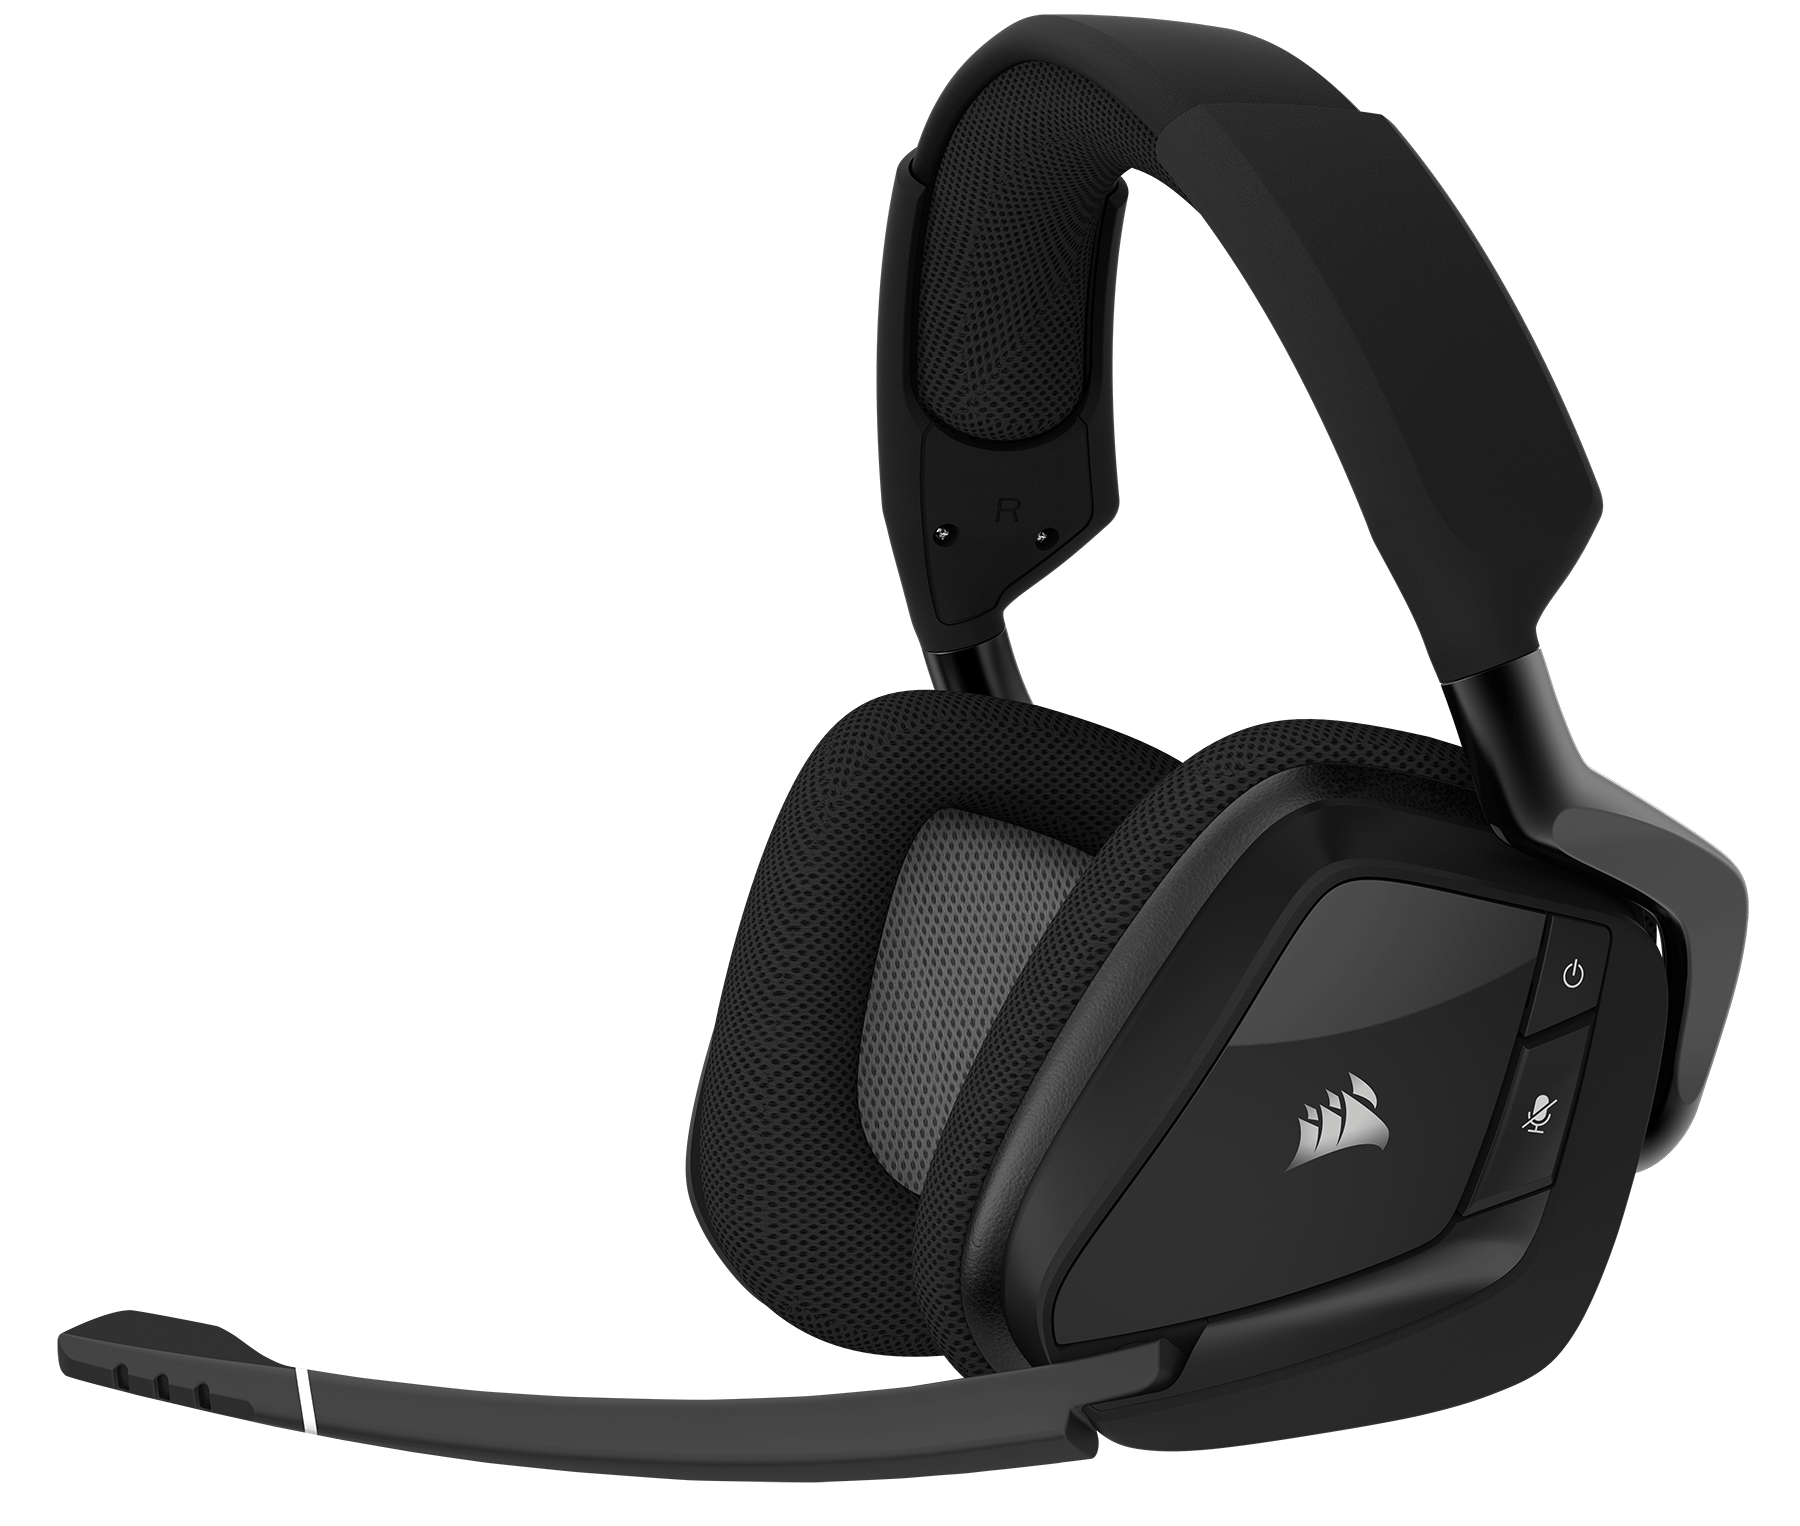 Corsair Void Pro Rgb Wireless Pc Gaming Headset Review By Alex Rowe Medium